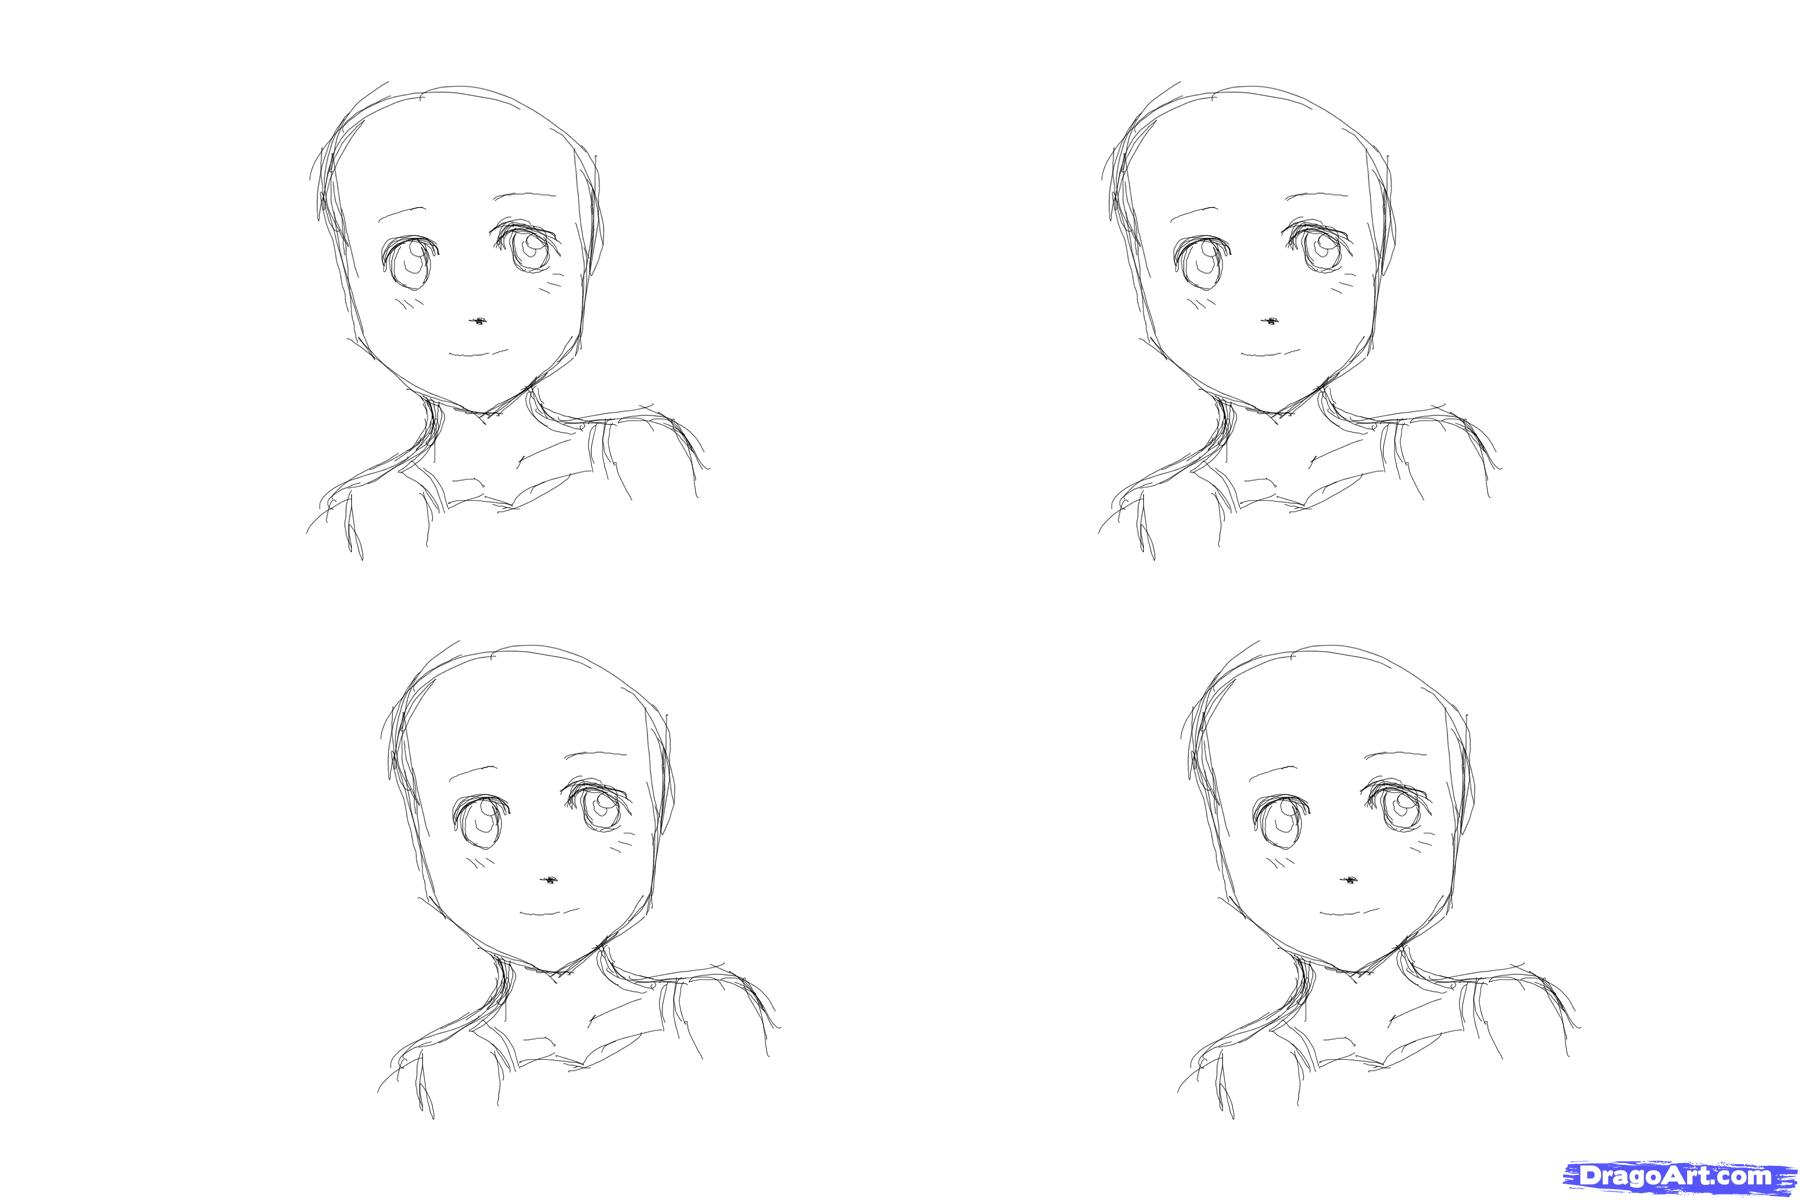 how to draw an anime girl step by step to draw anime hair for girls step by step anime hair an draw anime by to how step girl step